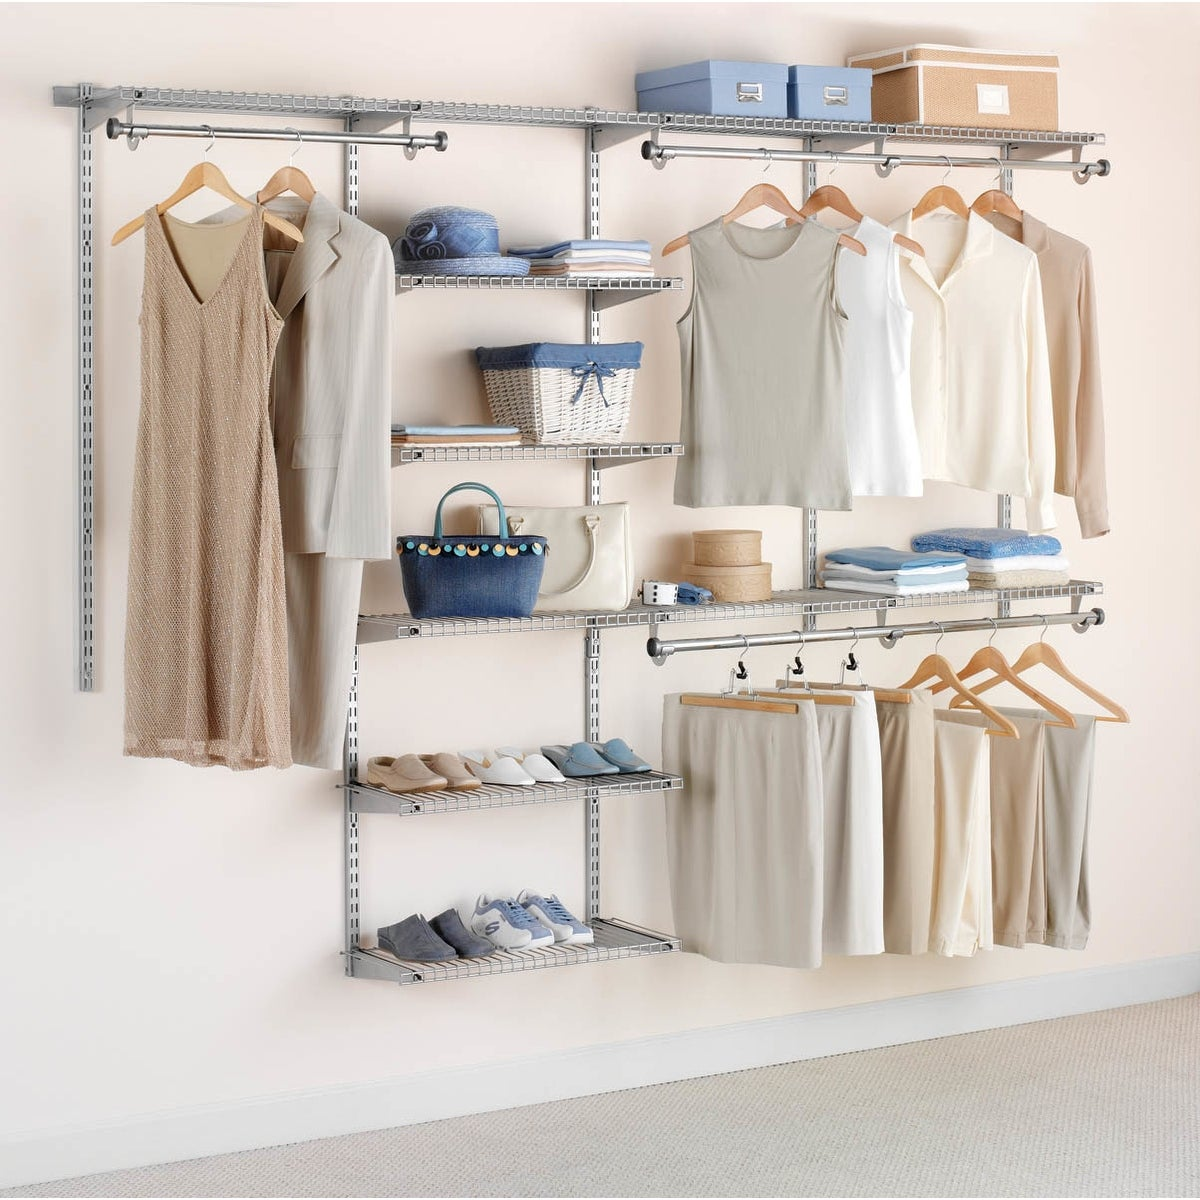 Rubbermaid Fg3h8900 Adjustable Wall Mounted Closet System With 6 Shelves Titanium